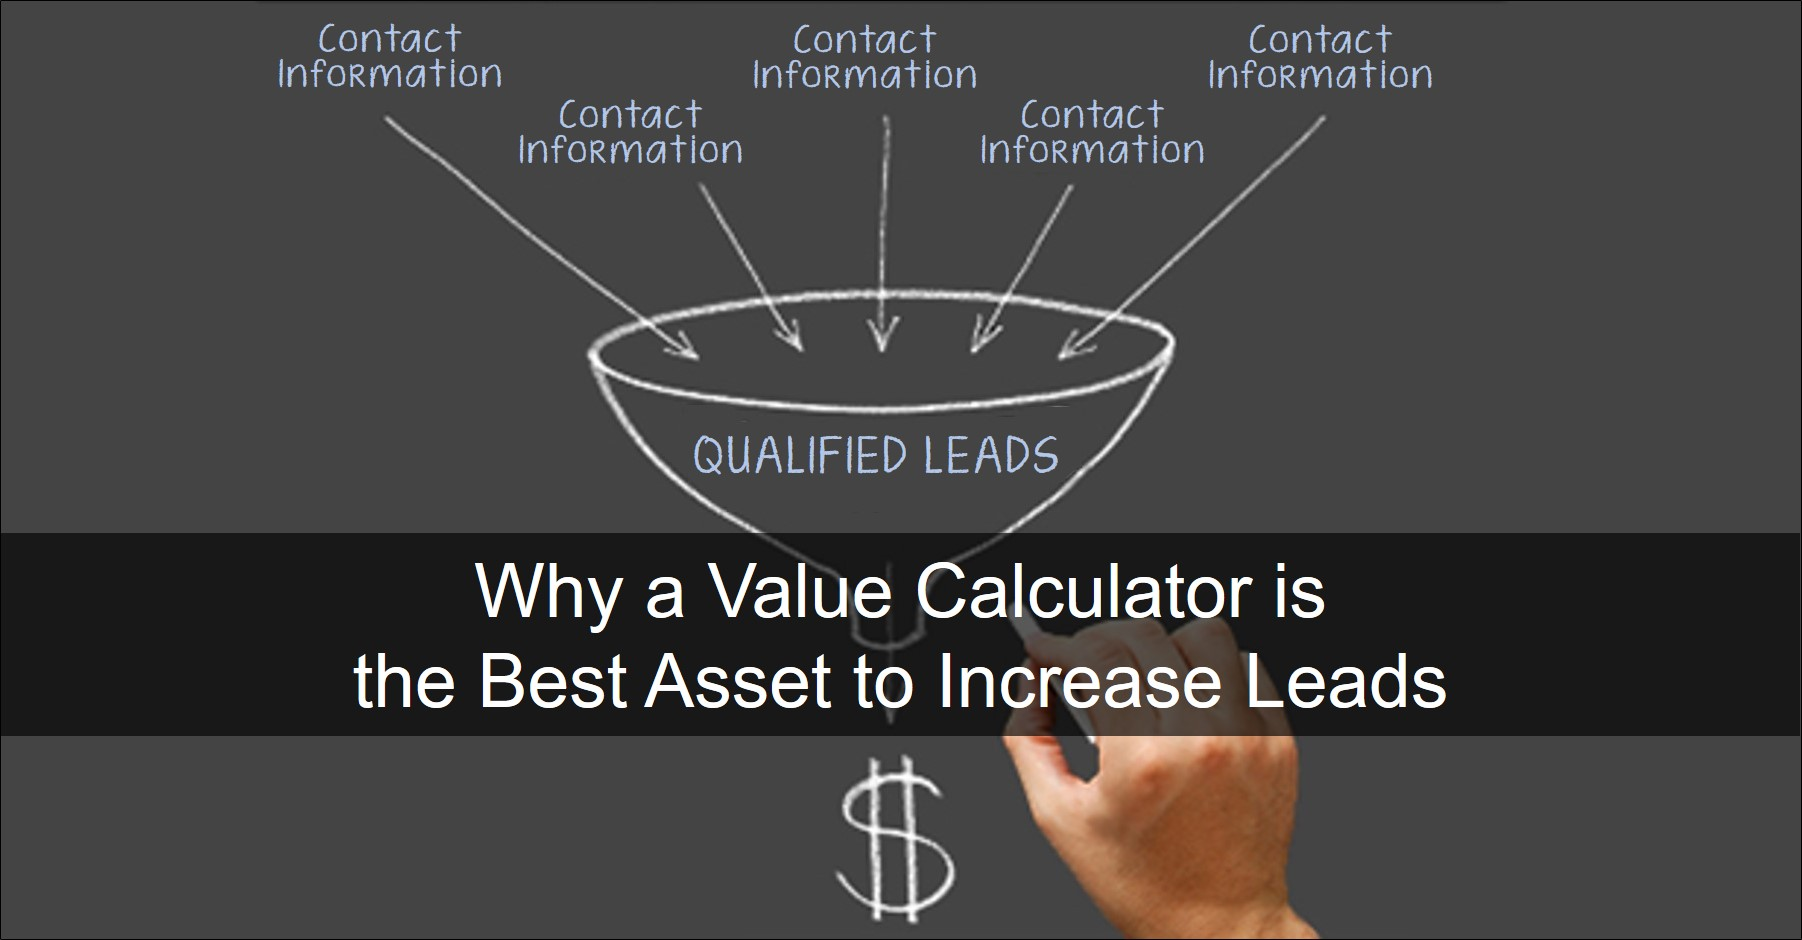 Value Calculator can Increase Leads